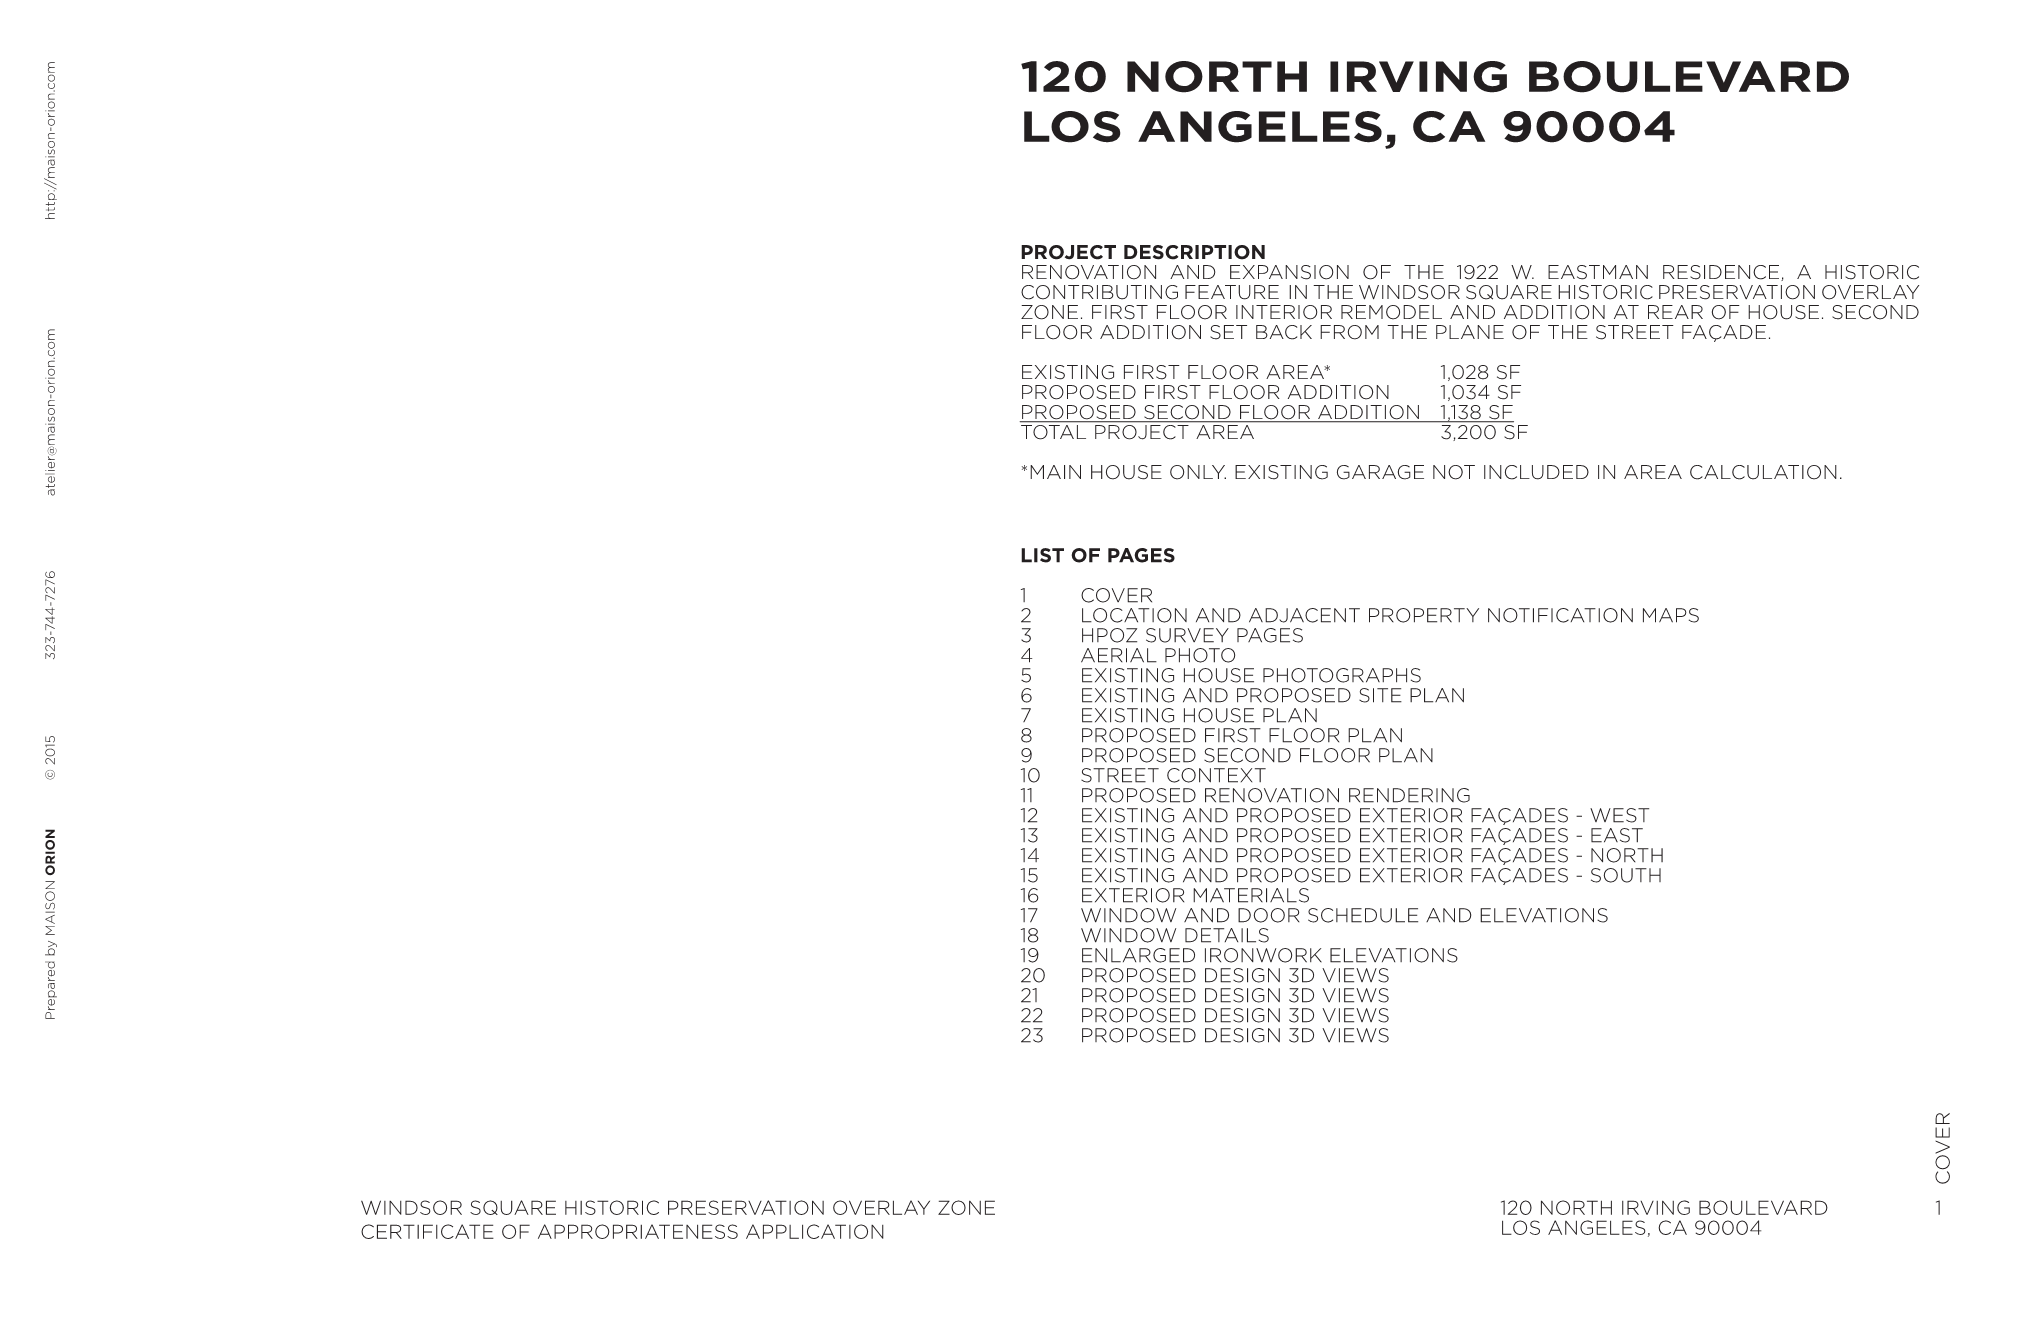 1-14-002 120 NORTH IRVING BOULEVARD - HPOZ COA APPLICATION DOCUMENTS.png